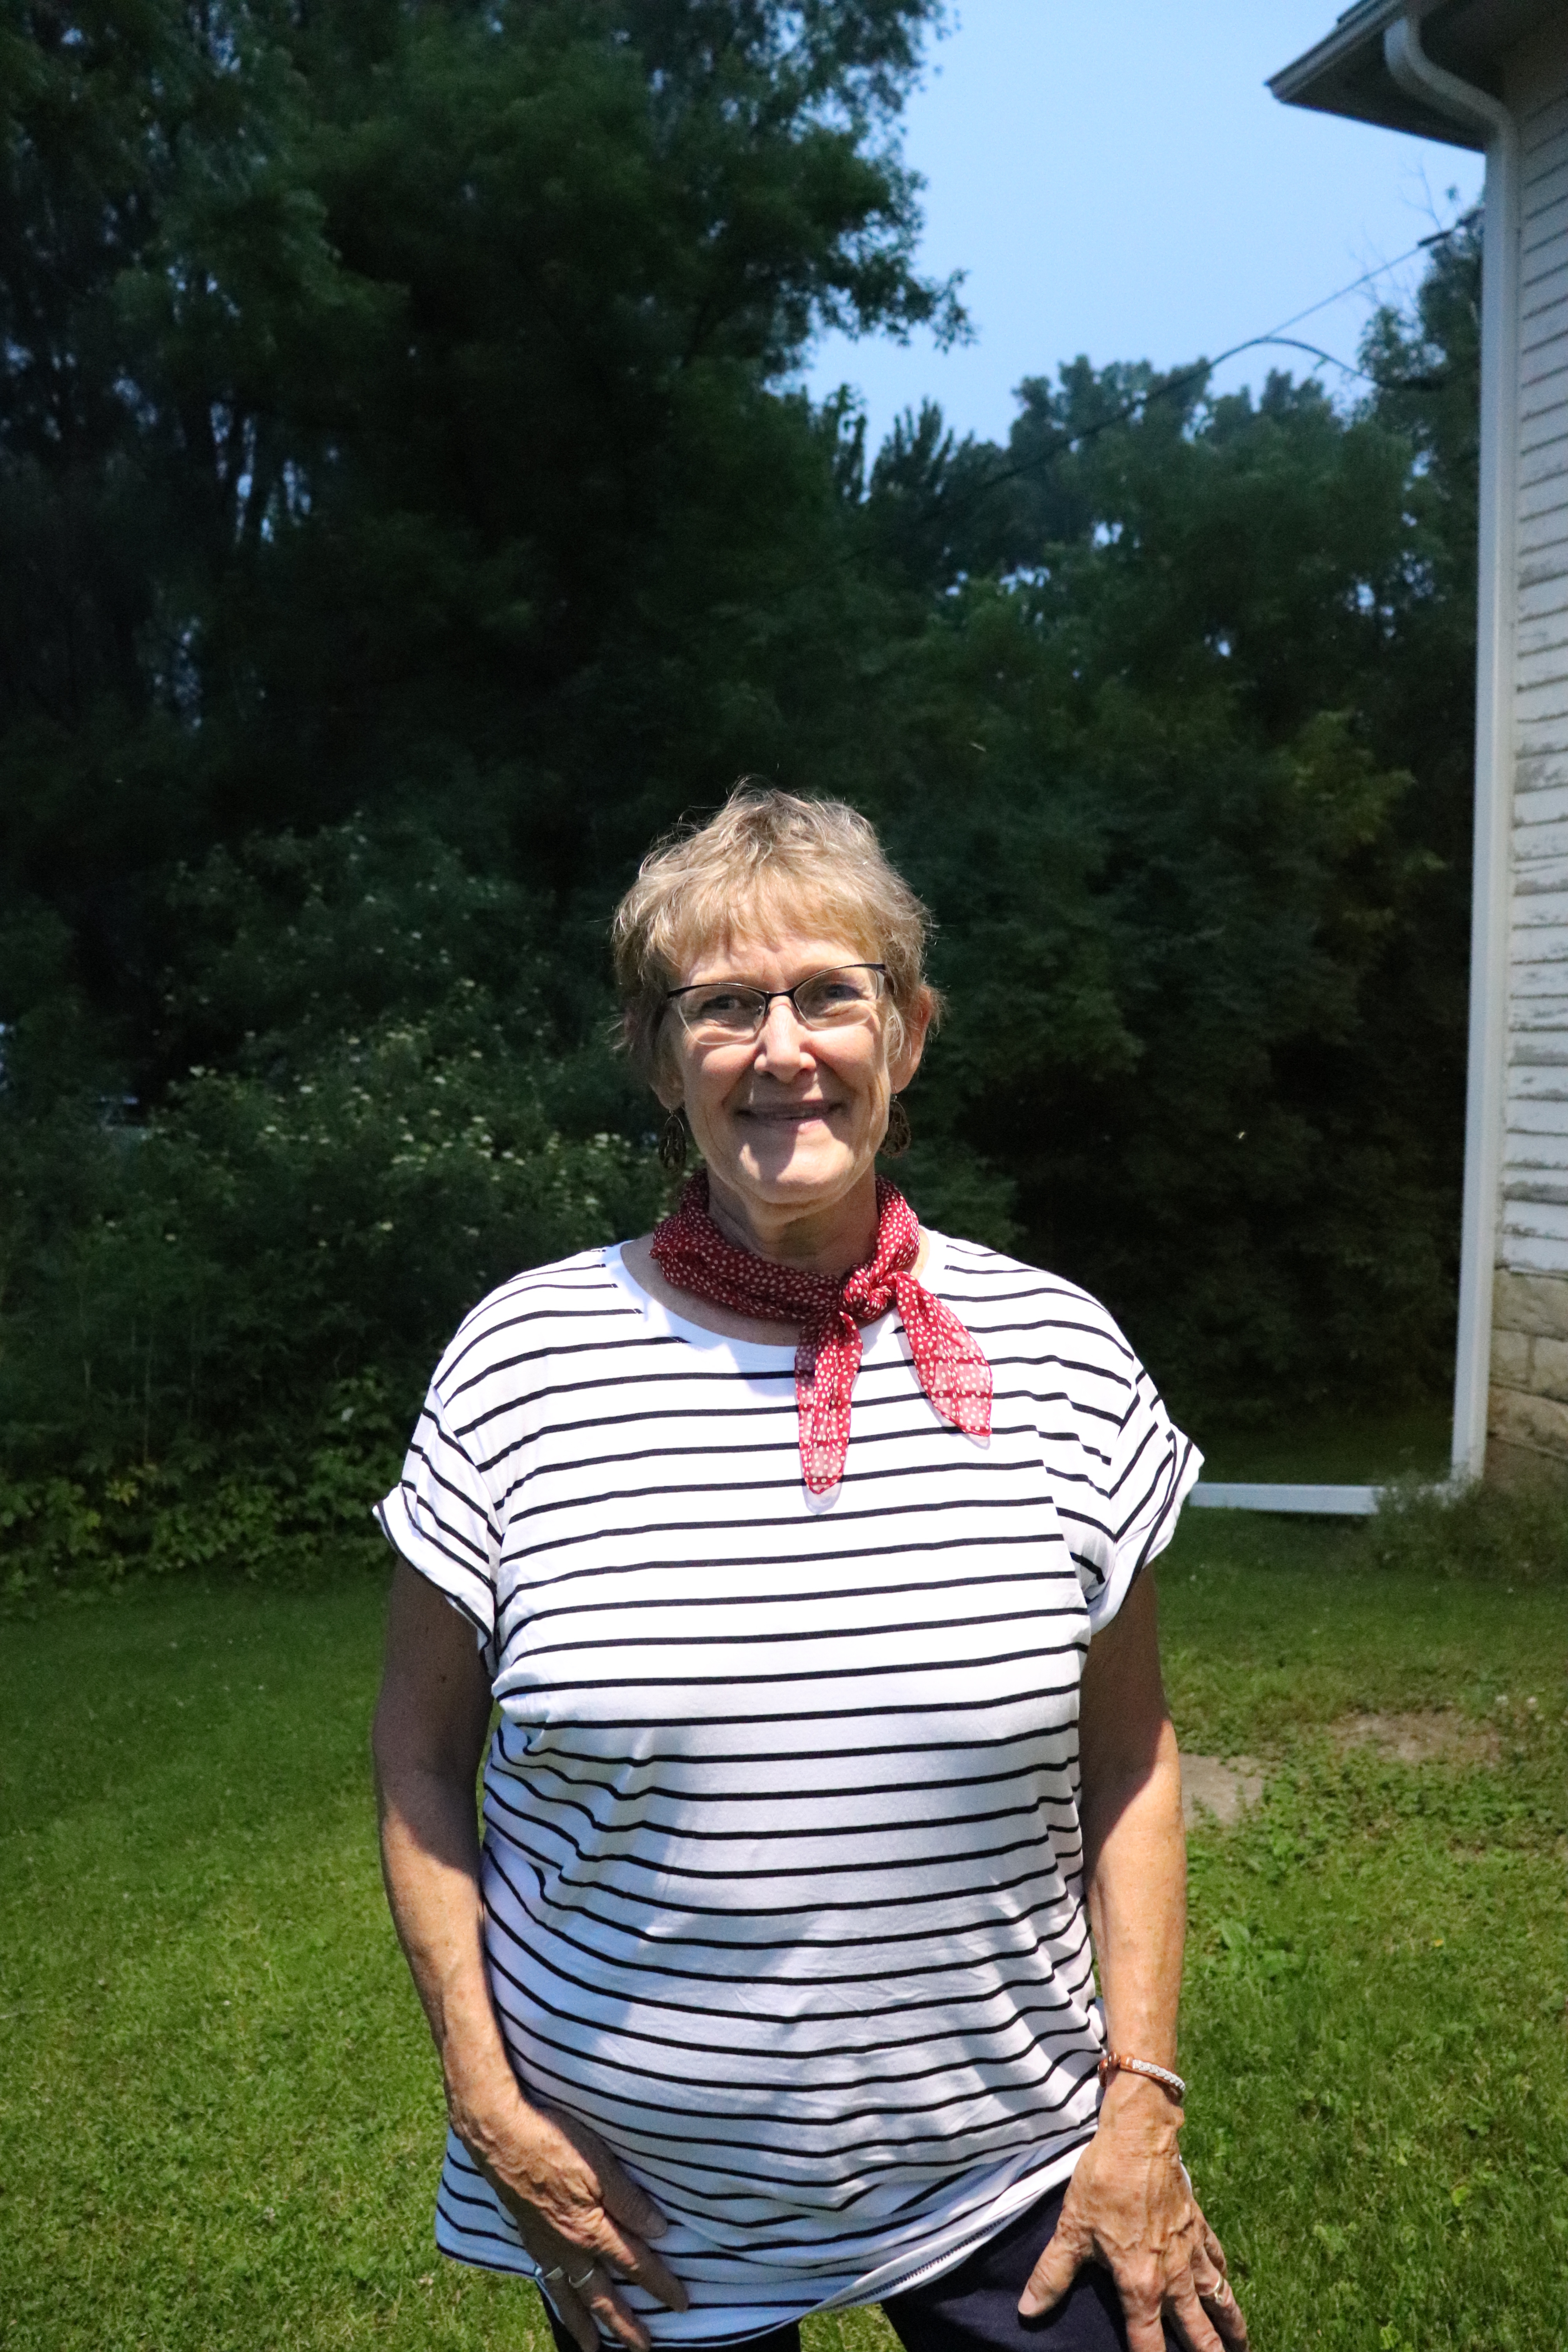 Carol Bergan stands outside the schoolhouse.